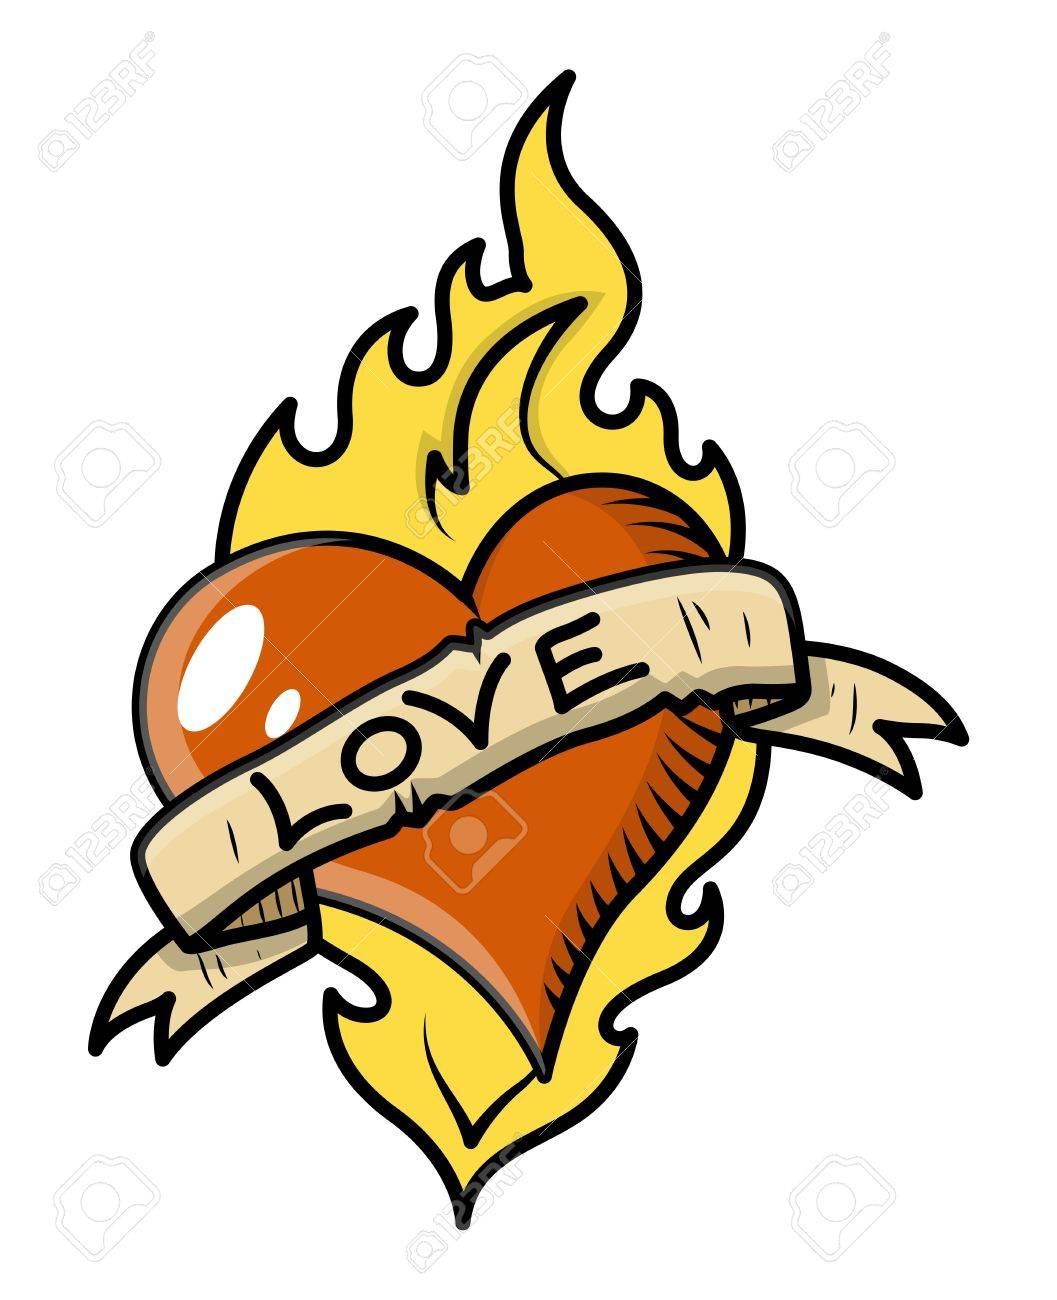 Retro Love Tattoo with Heart, Flame and Vintage Banner - Vector Illustration Stock Vector - 21233716